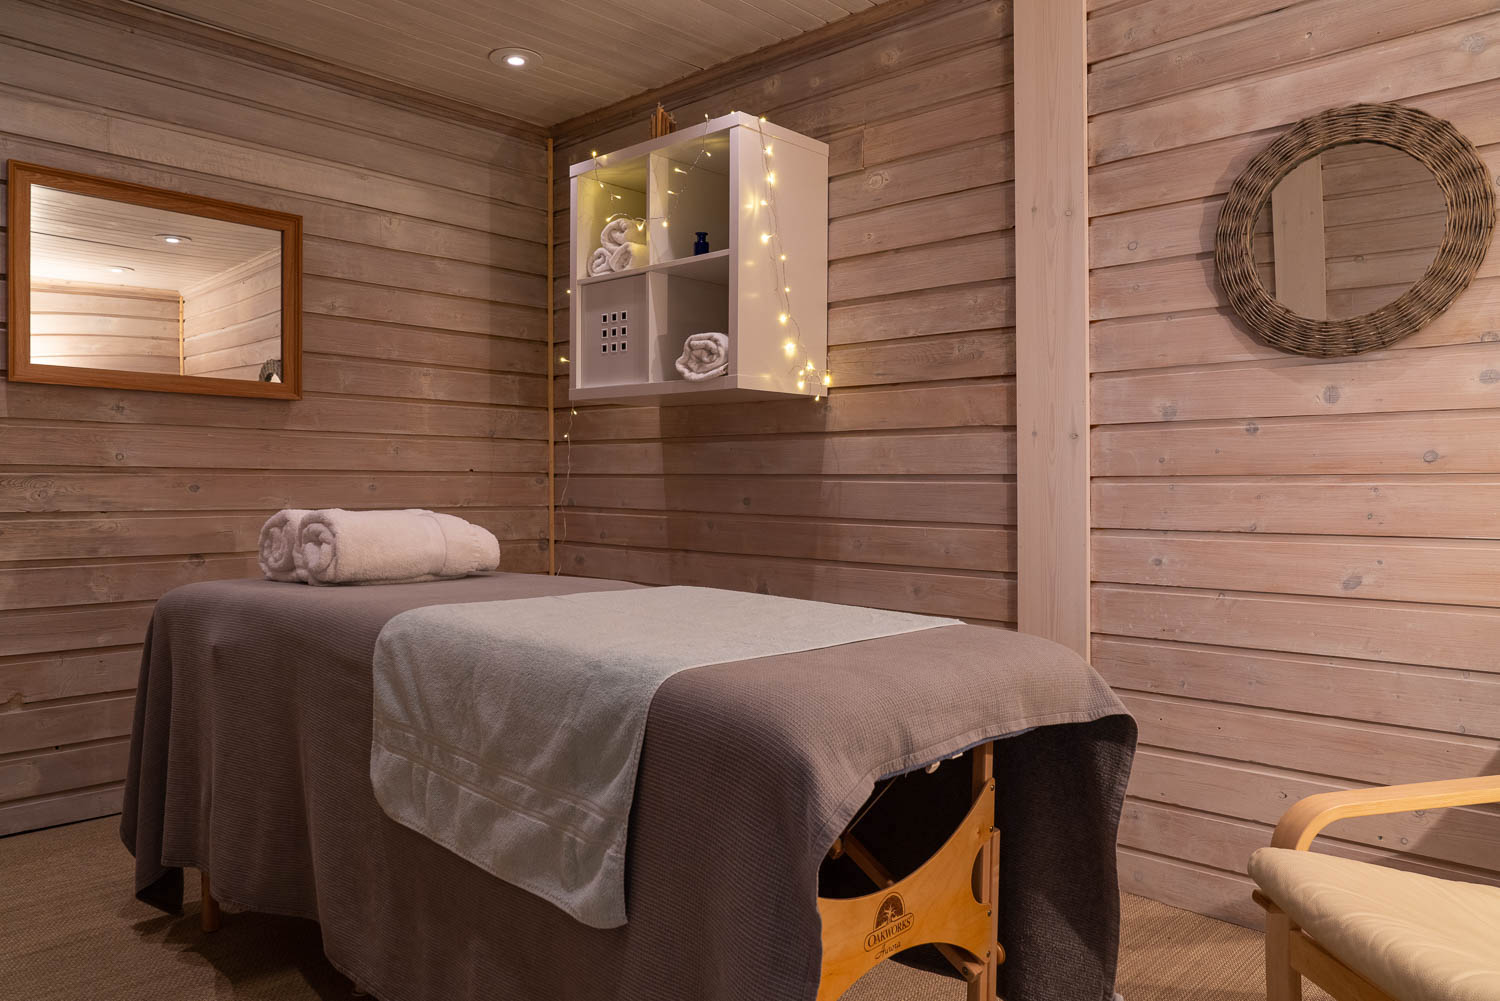 The treatment room at Flear Farm cottages is a place for pure relaxation and pampering, while Flear itself is a retreat from the world at large this peaceful space takes this to another level and our skilled therapists will help you truly unwind and enjoy your holiday.